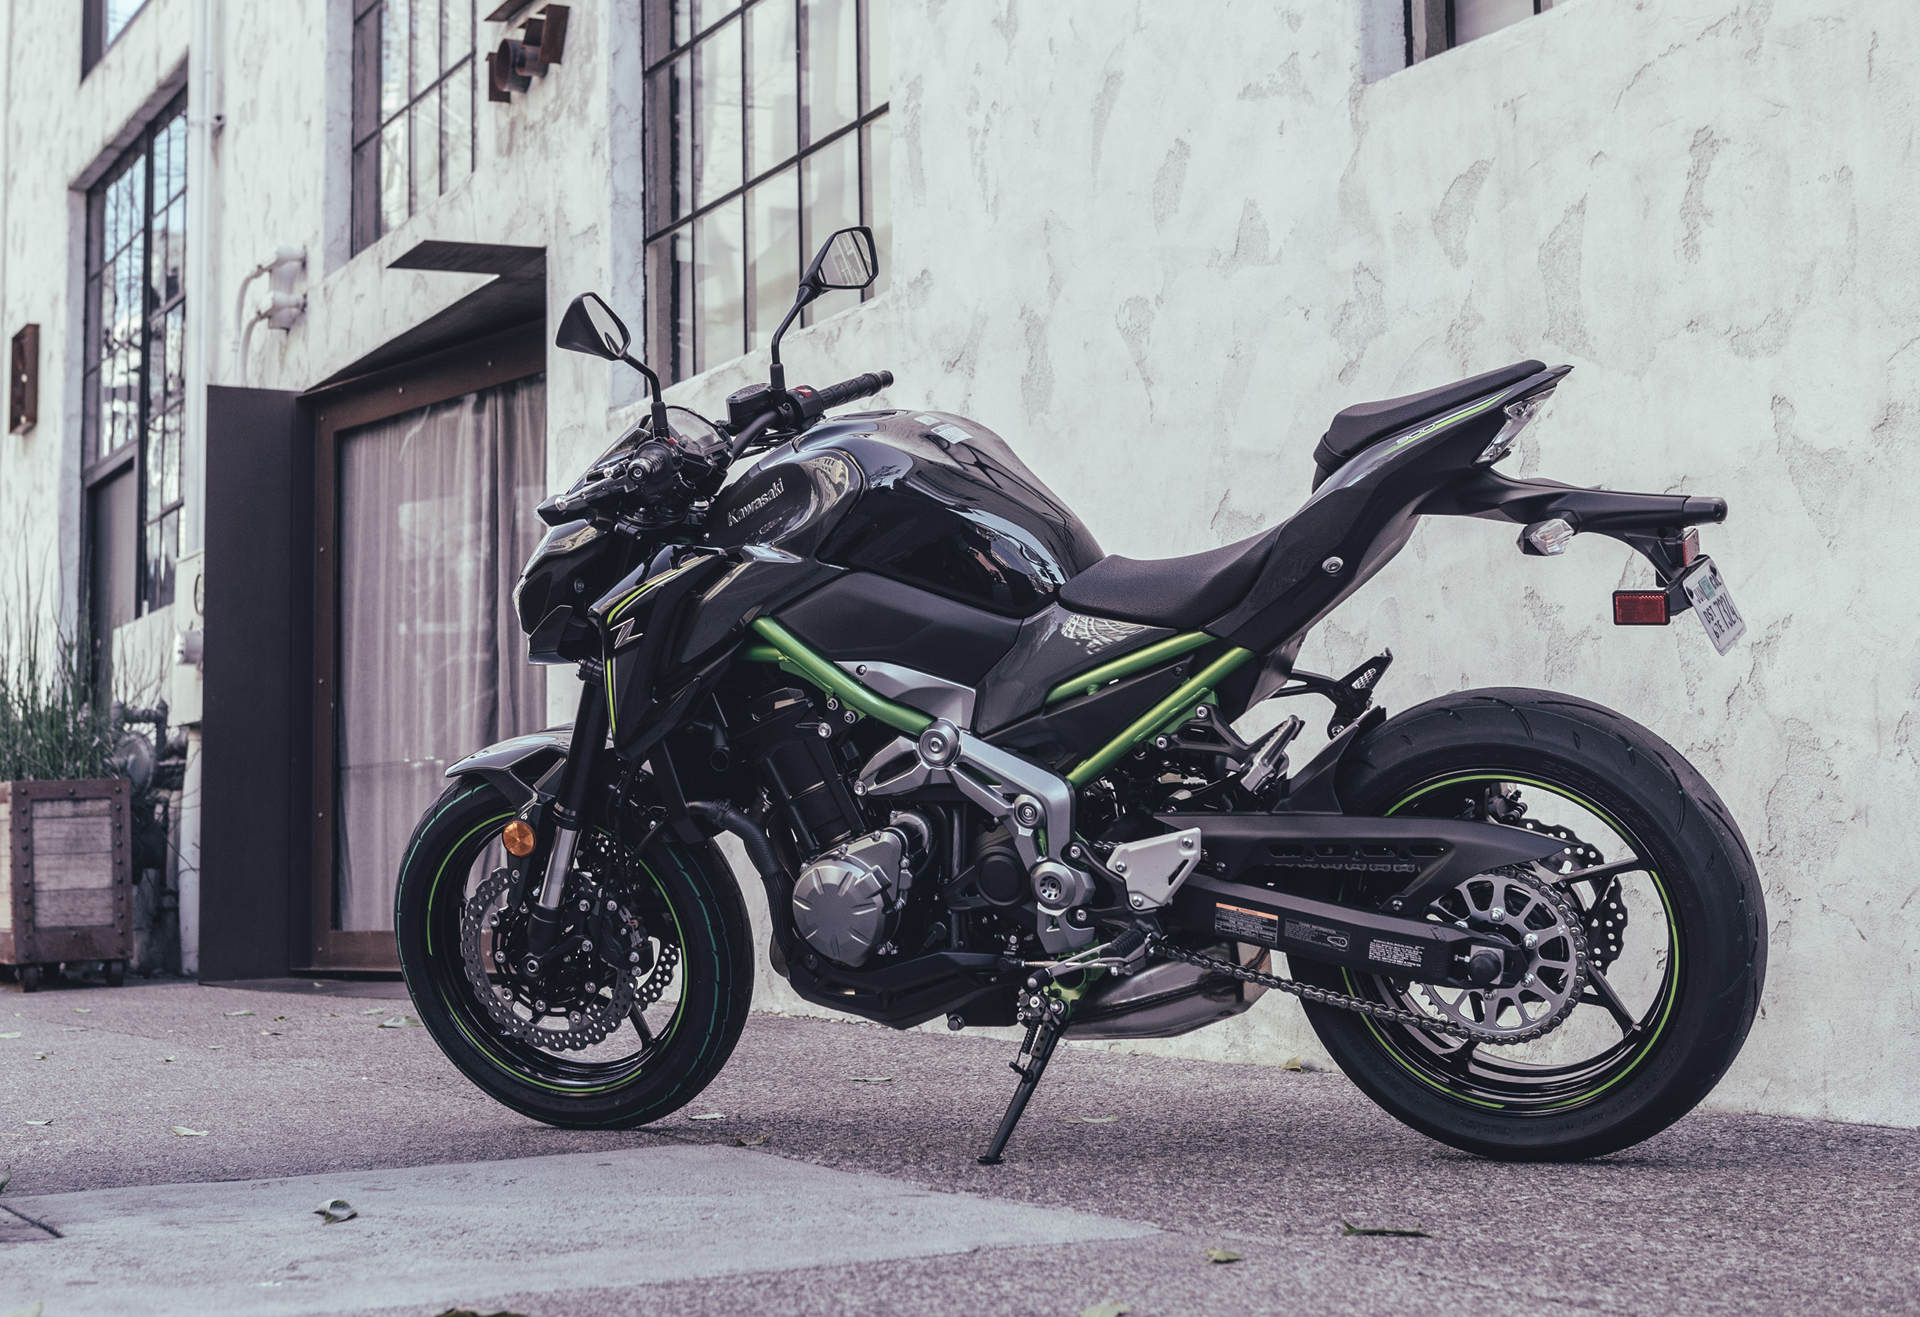 Gray Metallic Flat Spark Black And For Additional Details Specifications Visit Kawasakis Web Site